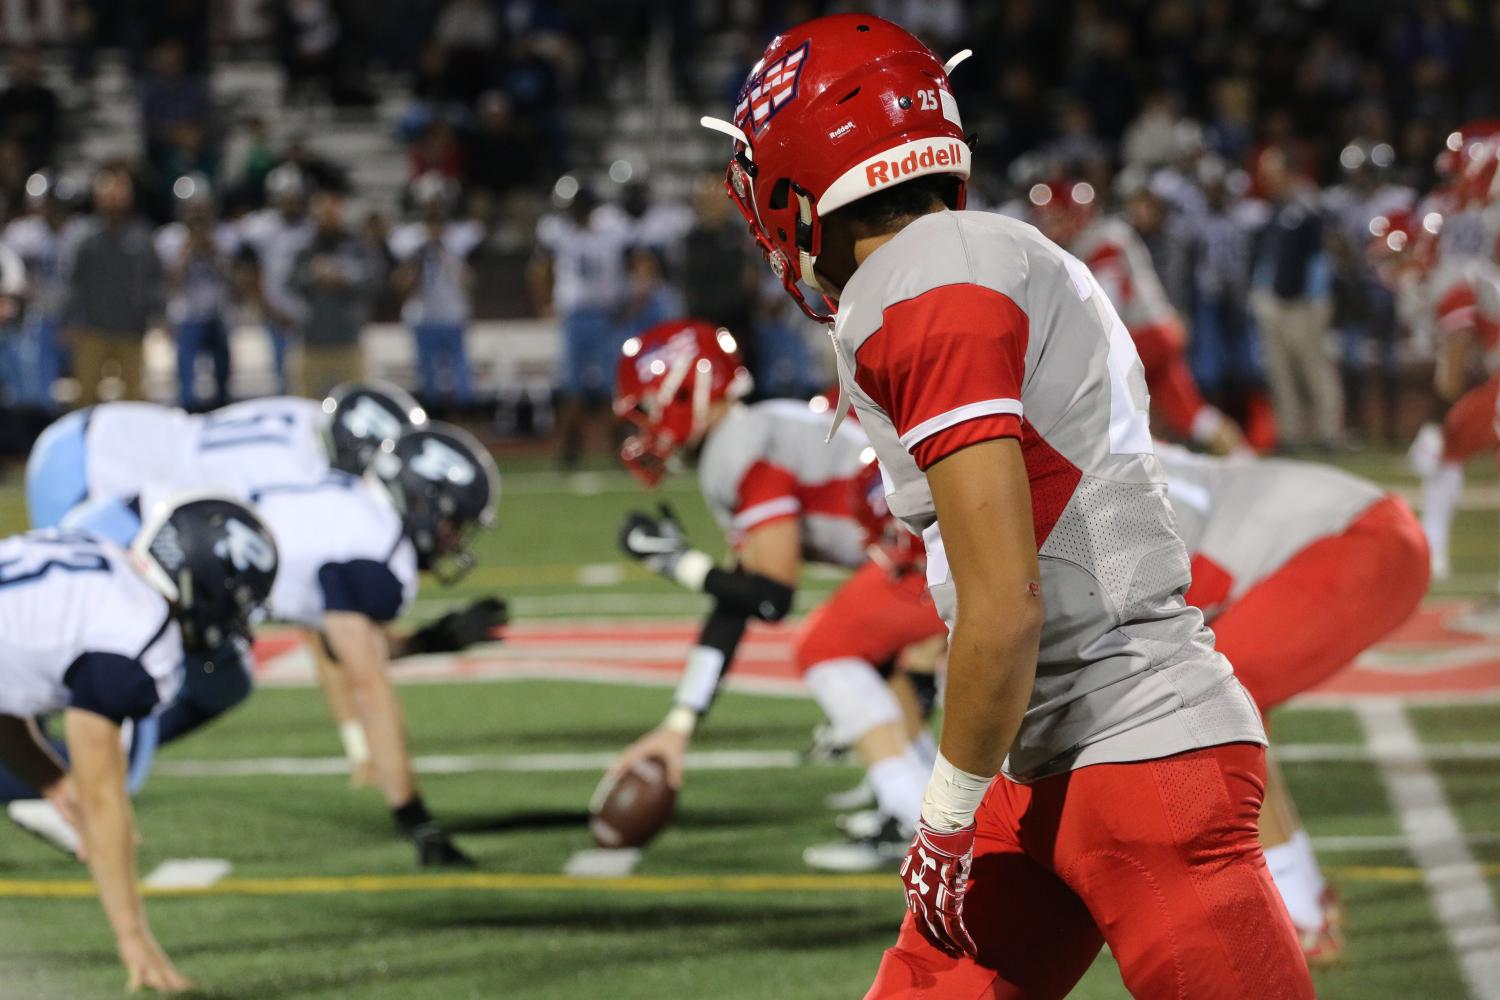 Niles West suffers another tough loss of 23-0 resulting in a record of 0-3.